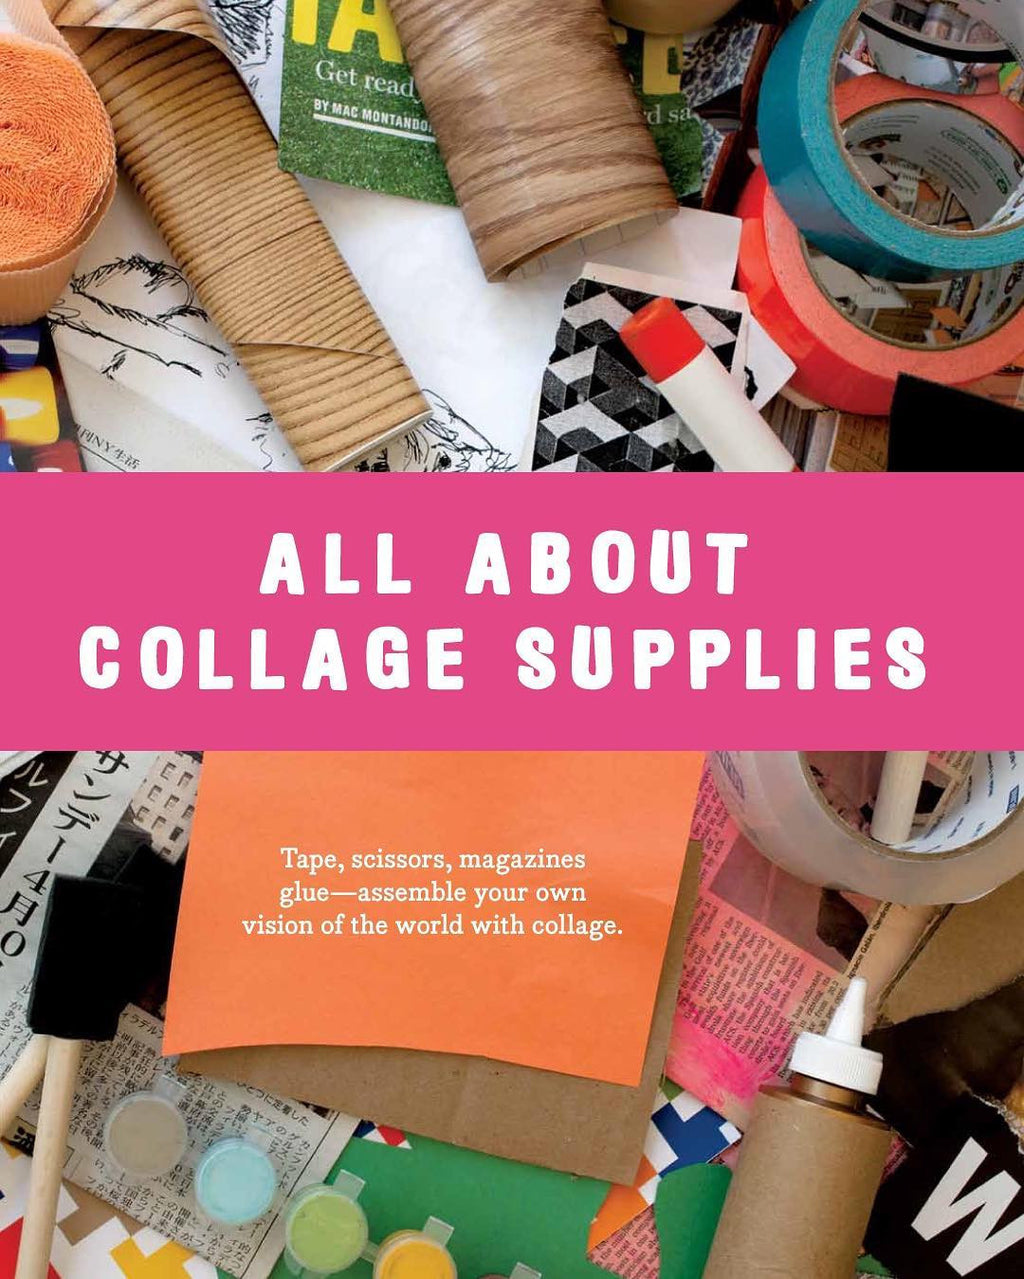 All About Collage Supplies